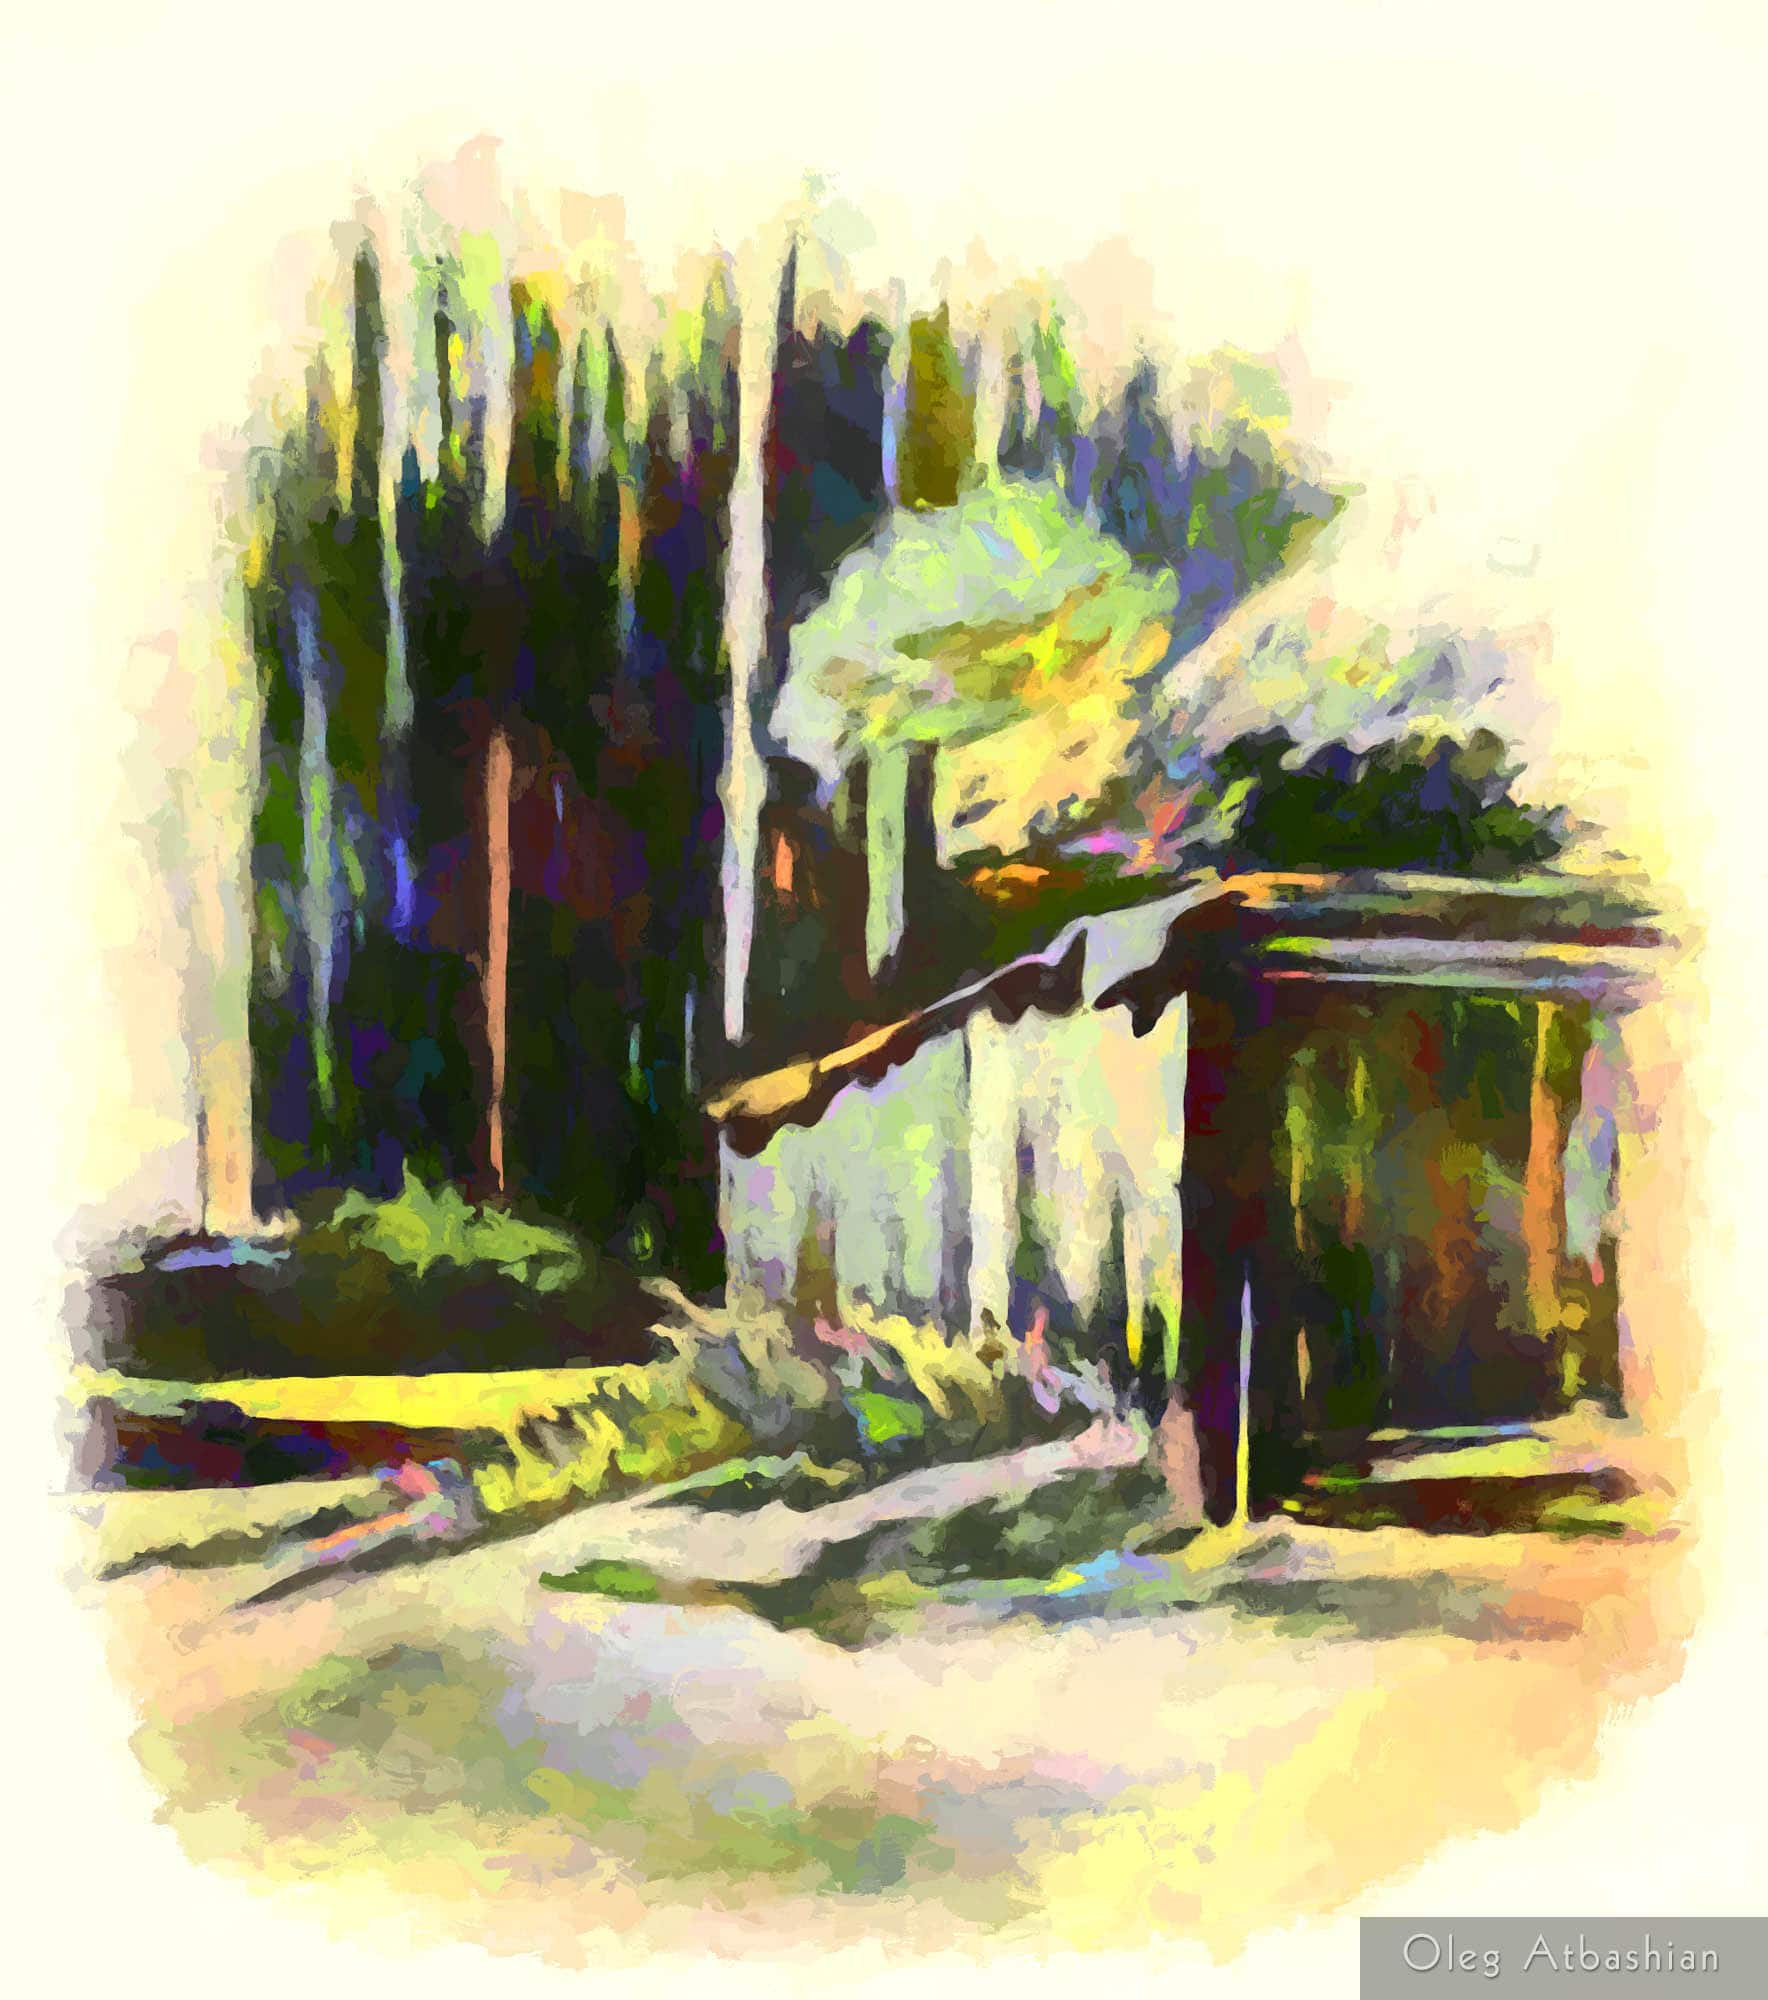 Sketch of a Shed